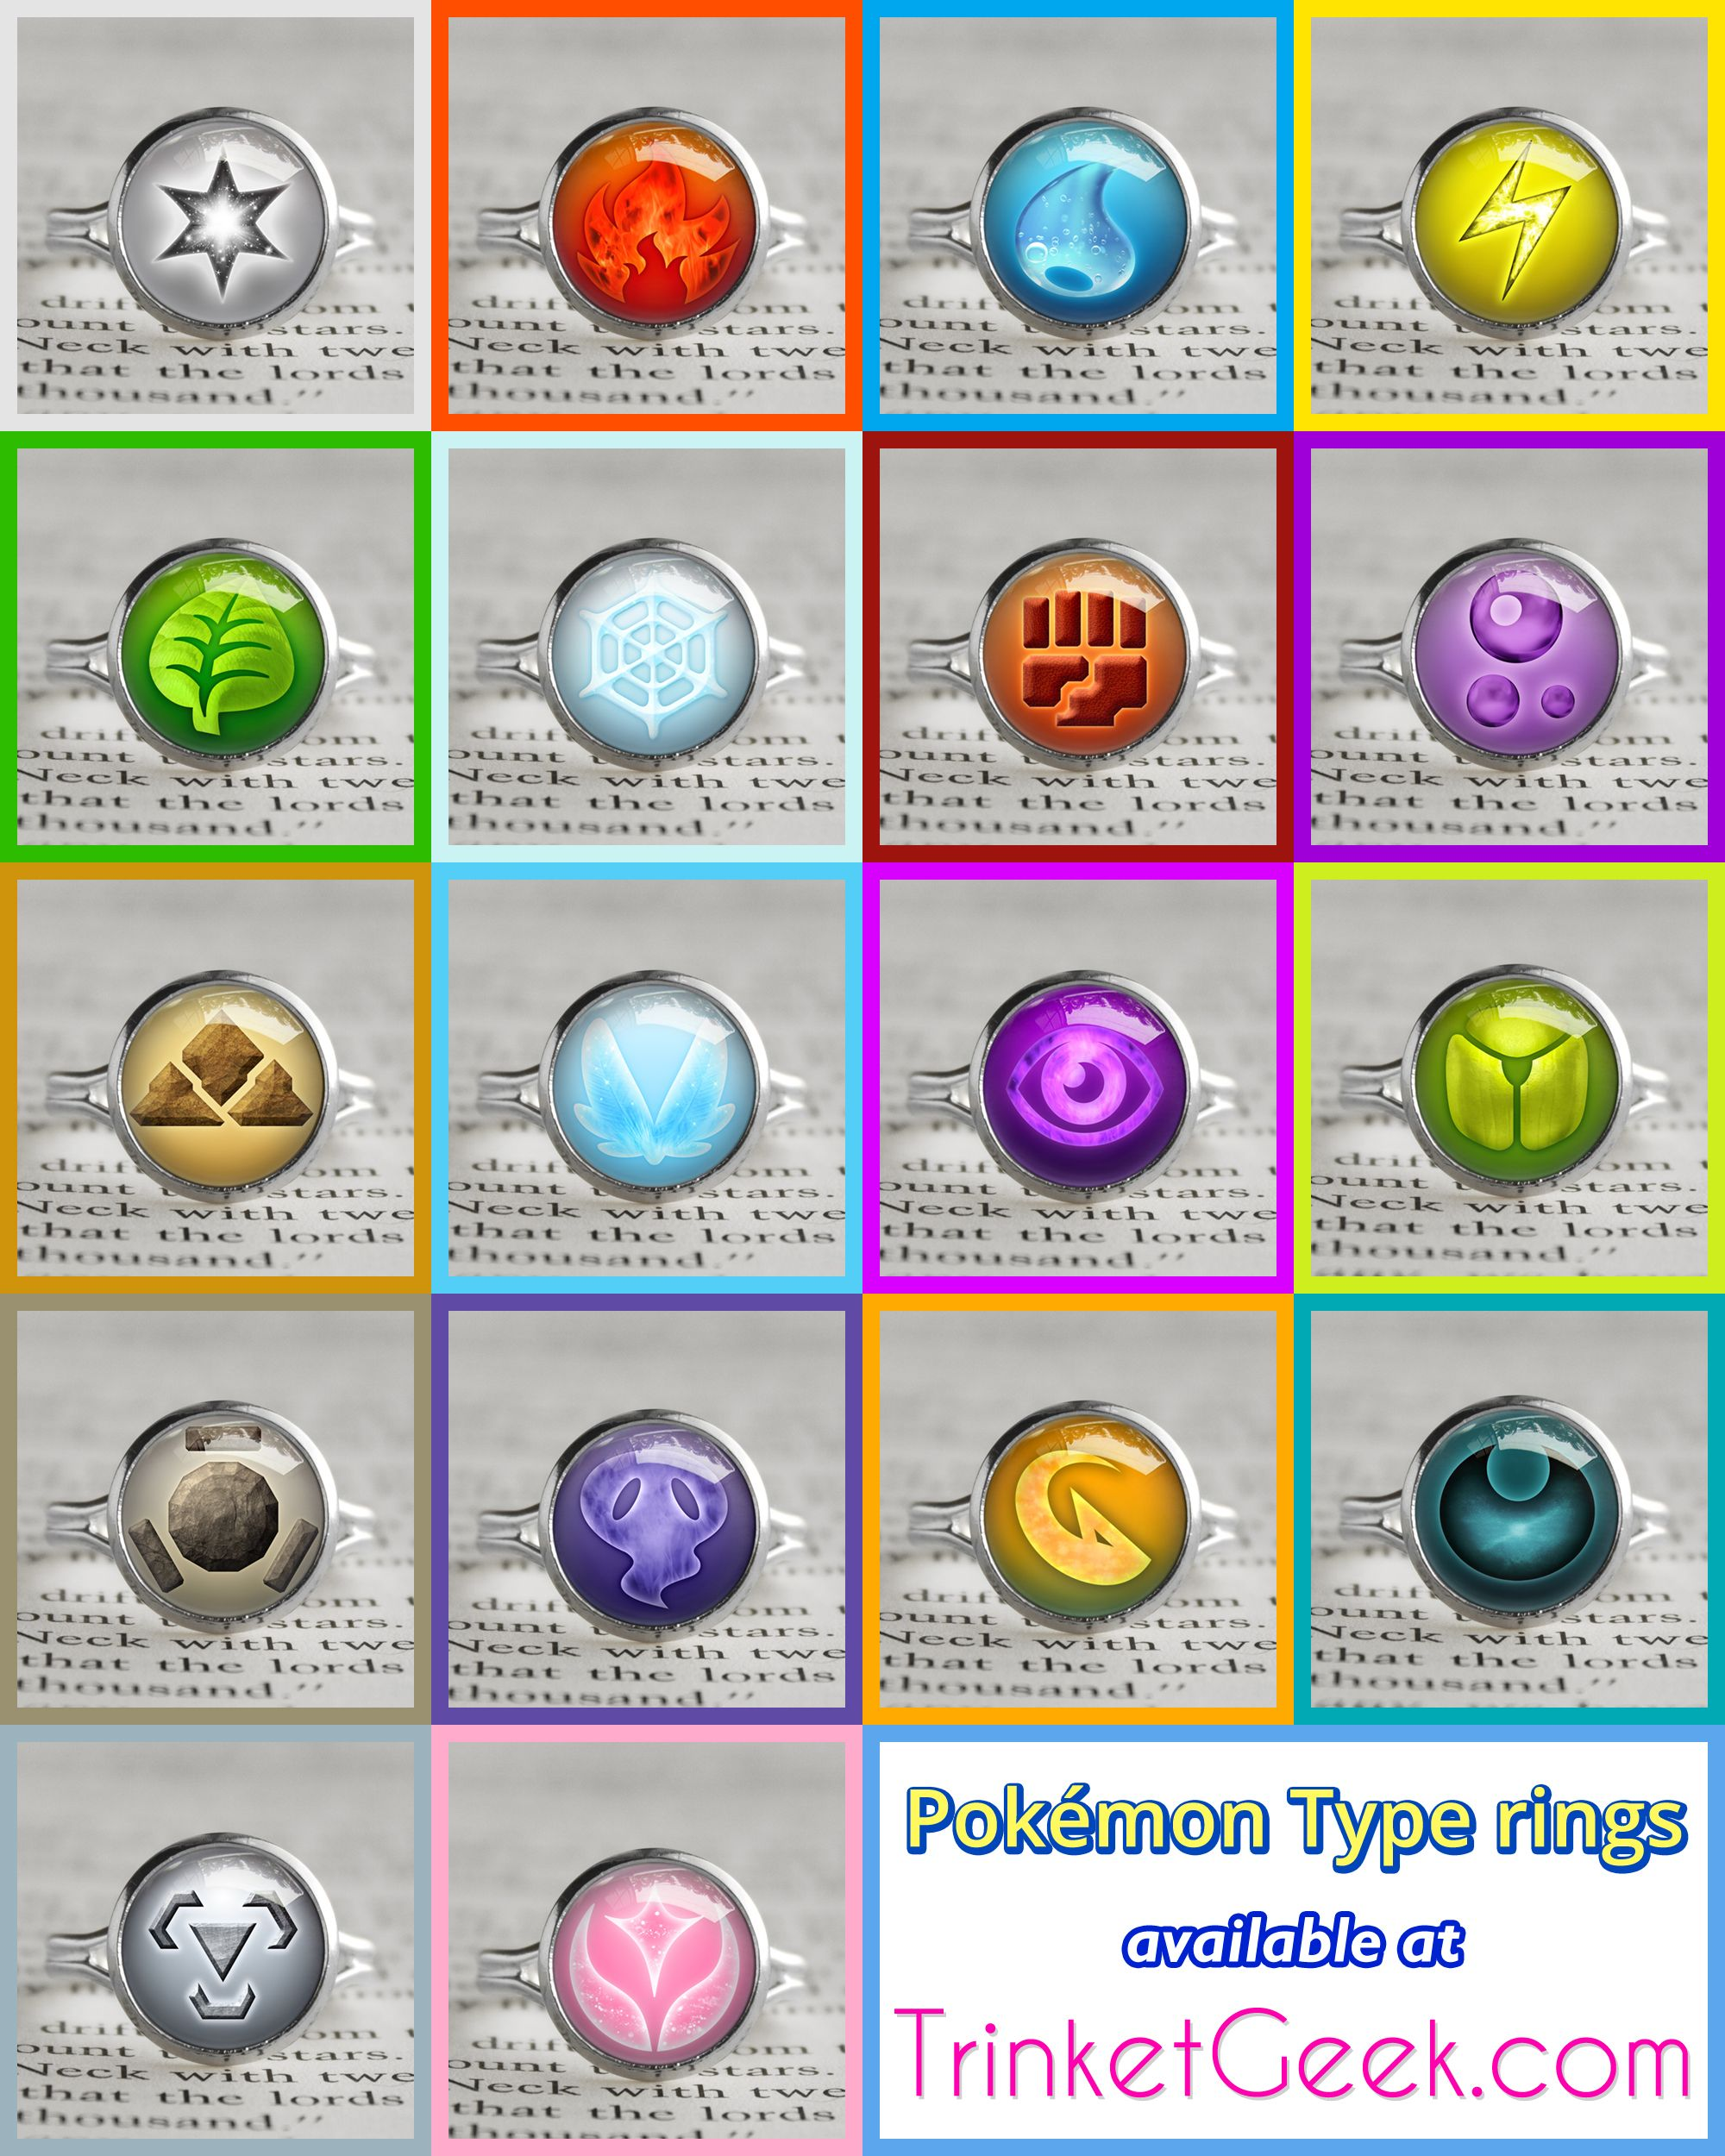 Pokemon Type rings. #kanto #gaming #treatsforgeeks